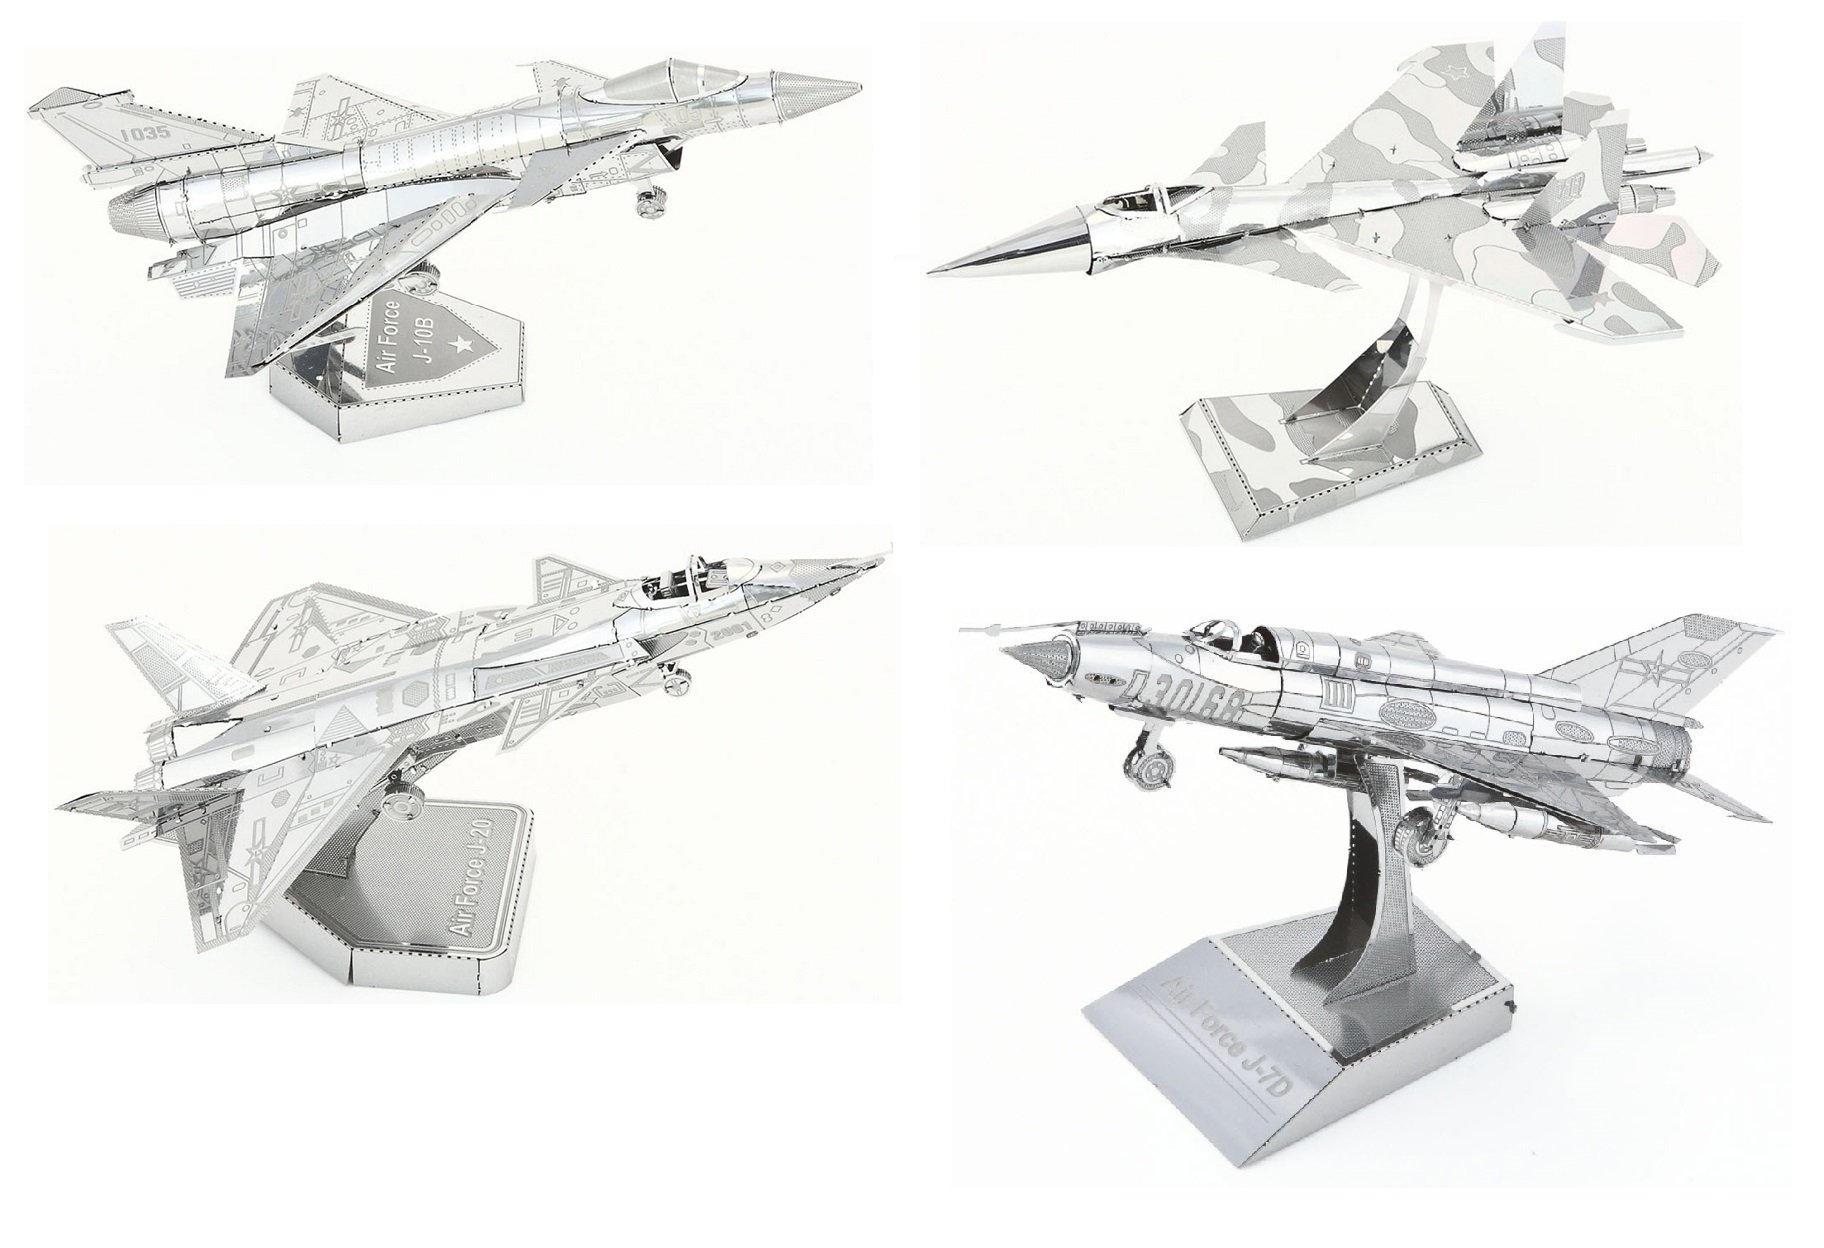 3D Metal Puzzle Models of The Fighter Jet Collection - DIY Toy Metal Sheets Assembling Puzzle, 3D Puzzle - 4 Pack